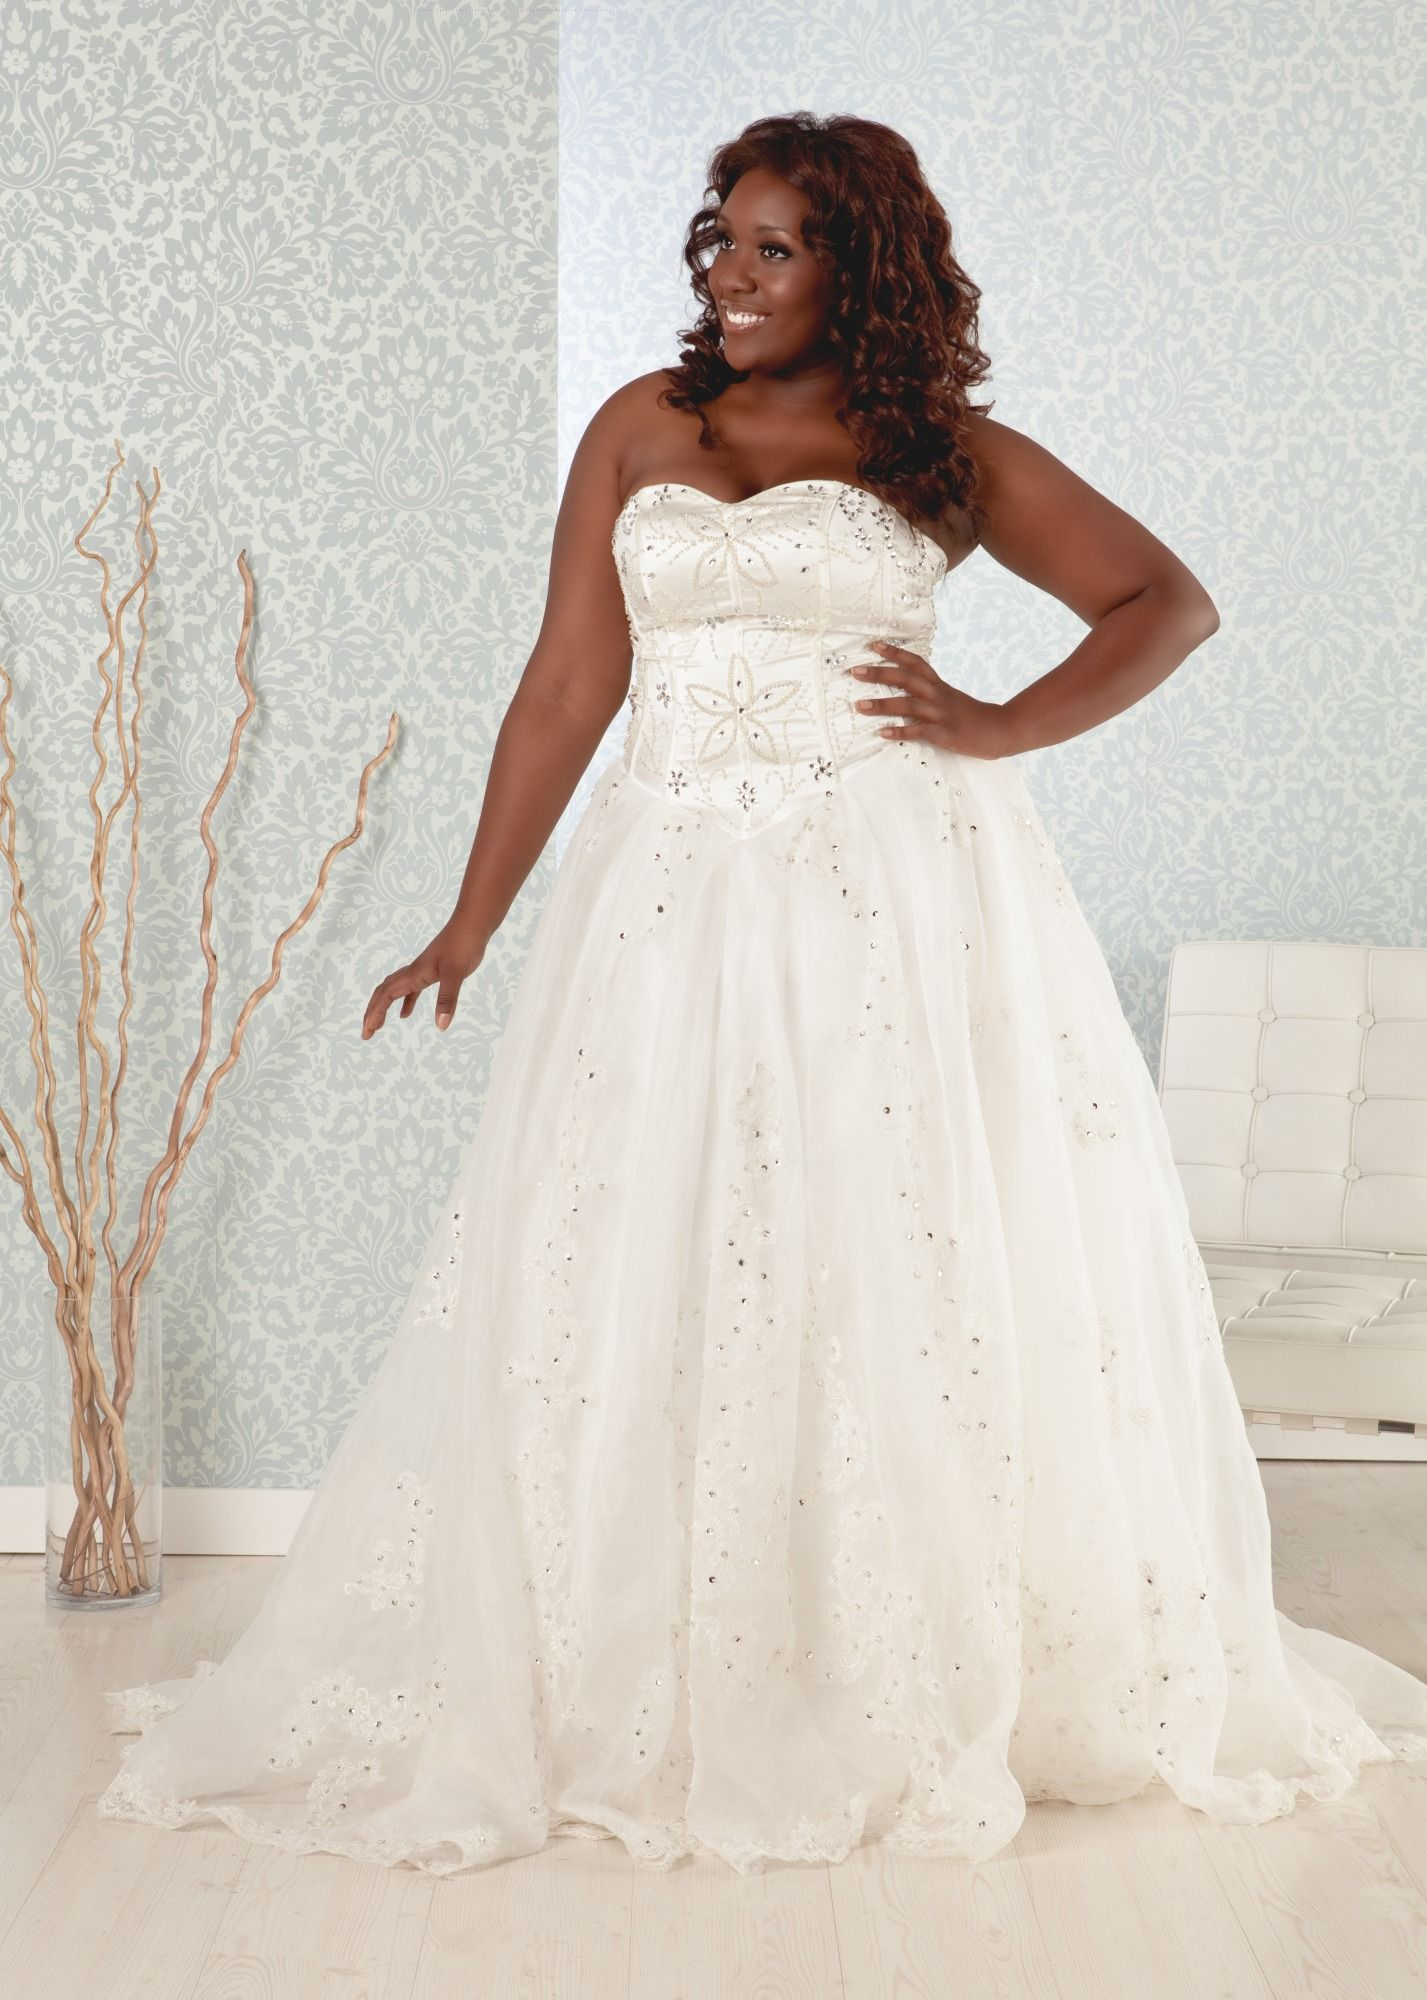 200 Off Madeline Plus Size Ball Gown Sweetheart Neckline Real Size Bride Me Plus Size Wedding Gowns Wedding Dress Inspiration Wedding Dresses San Francisco